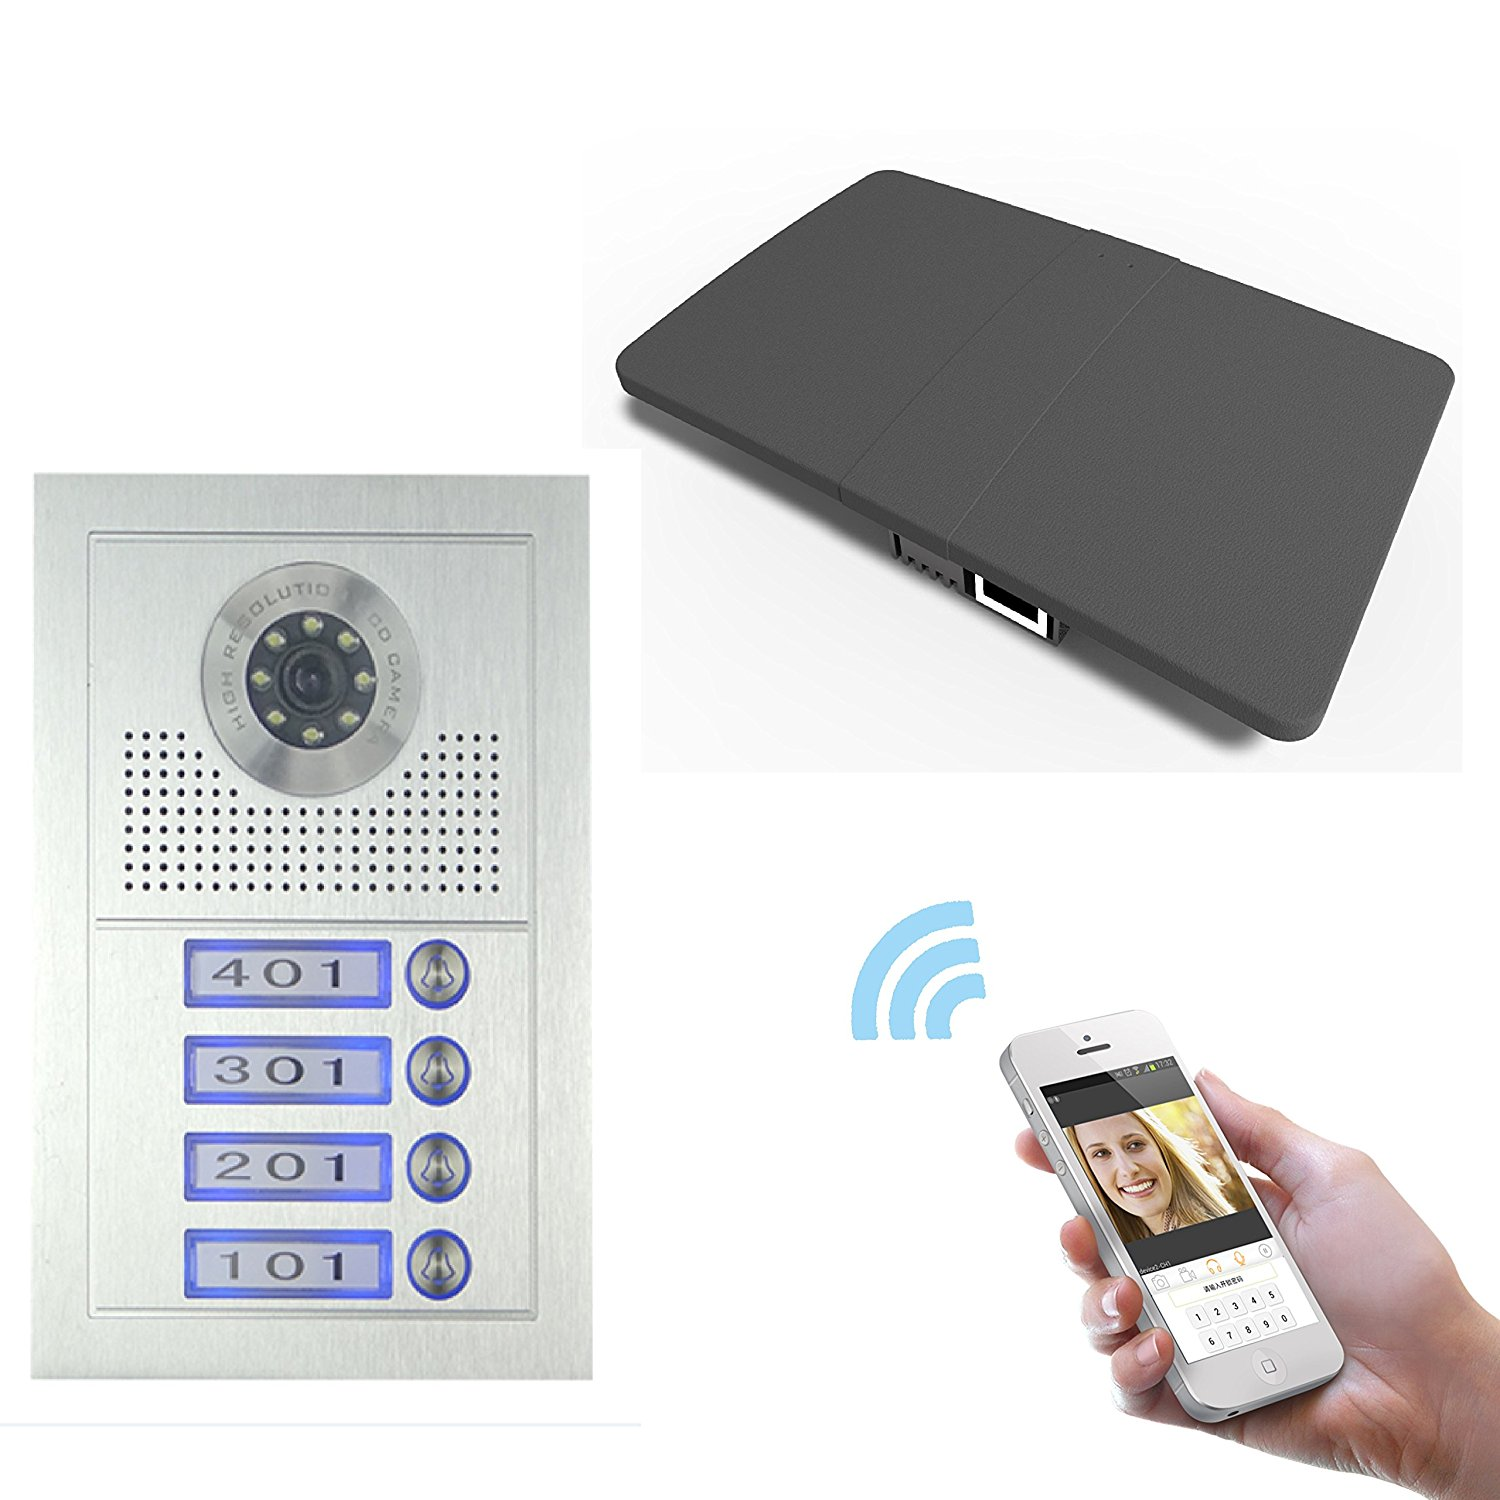 Gbf Smart Video Intercom Doorbell System For Multi Unit Apartment Building With Wifi Remote